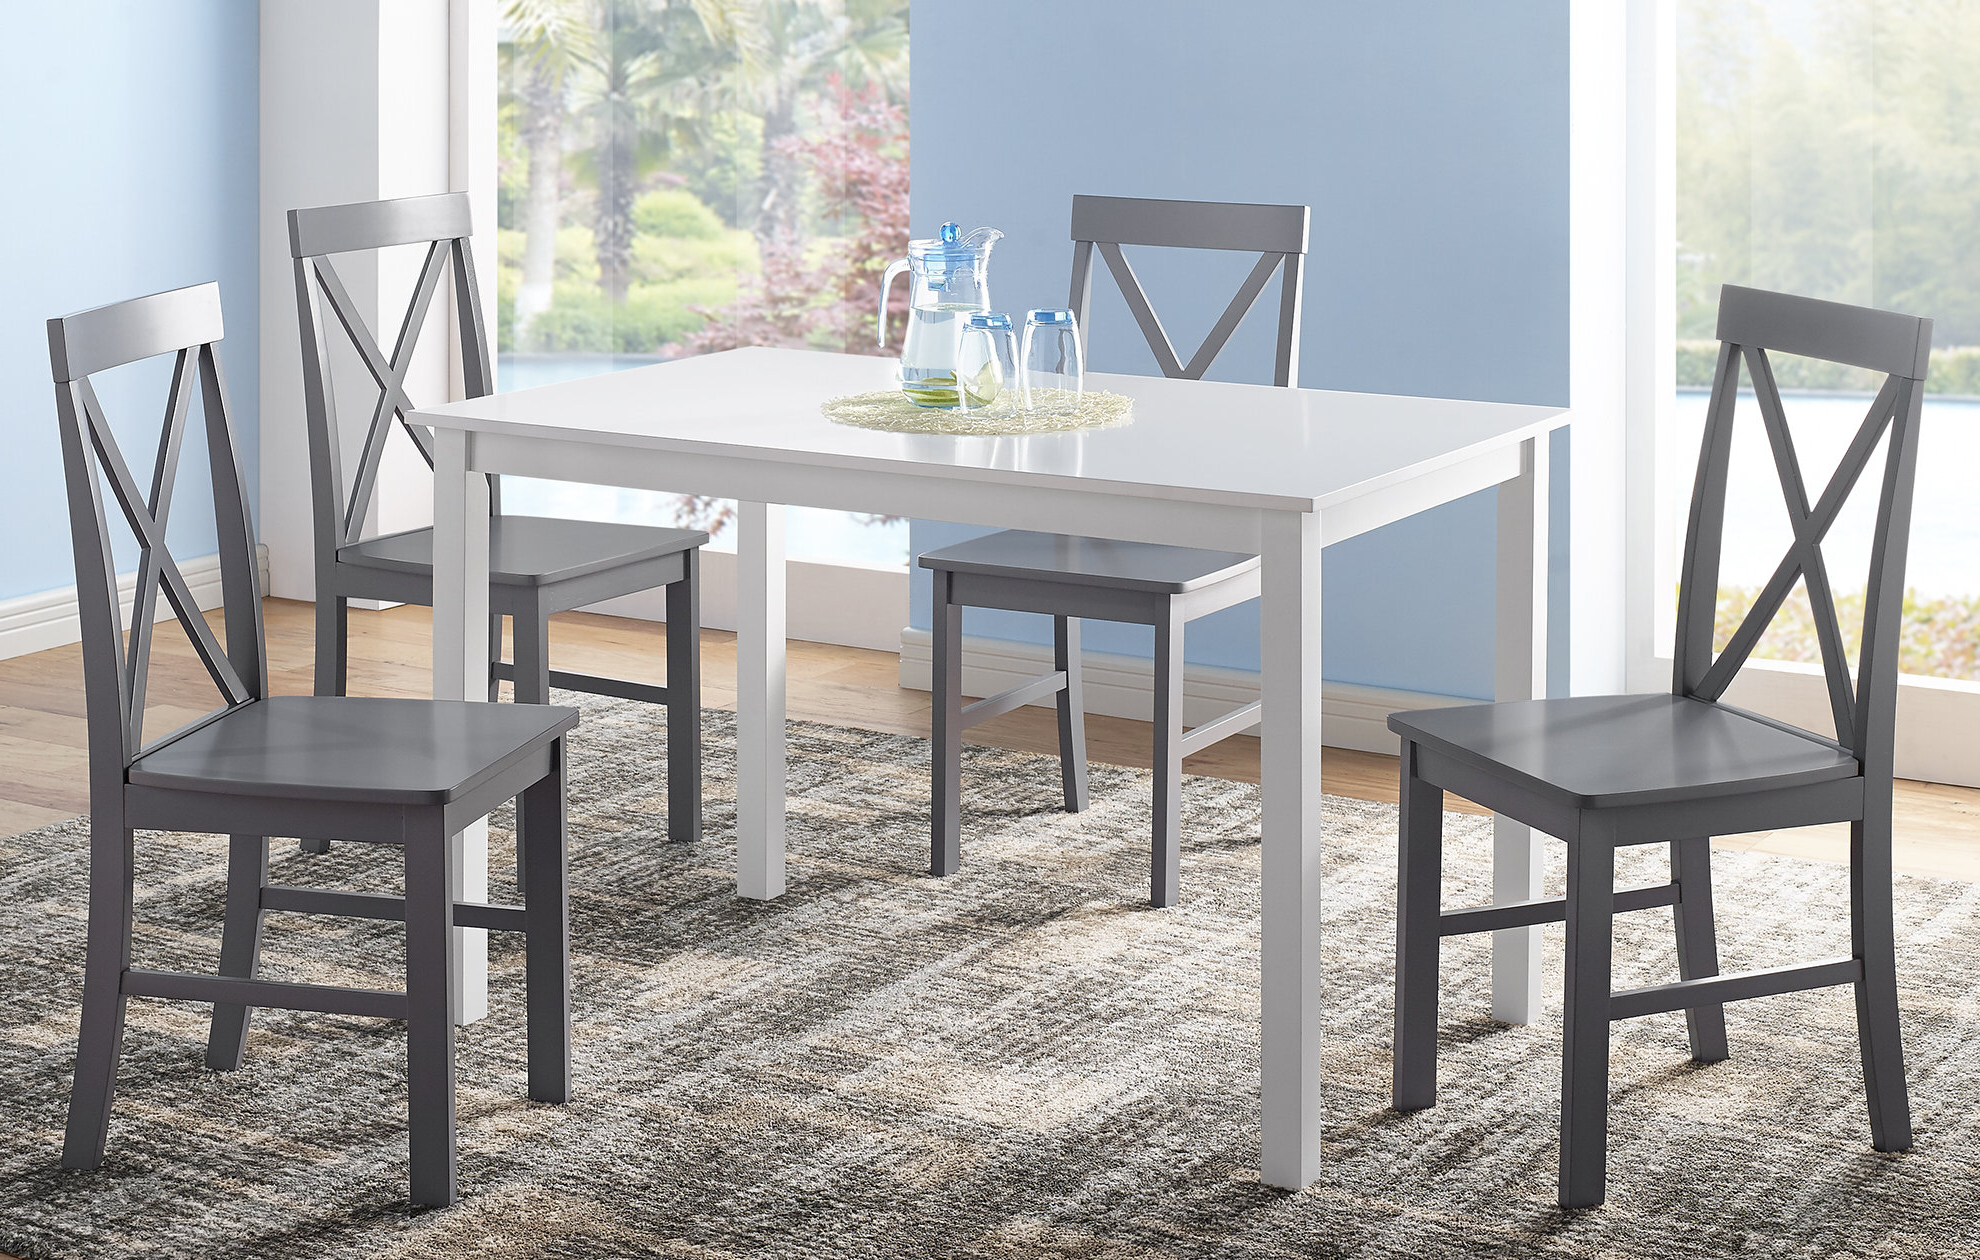 Rarick 5 Piece Solid Wood Dining Set Regarding Most Recent Ephraim 5 Piece Dining Sets (View 10 of 20)